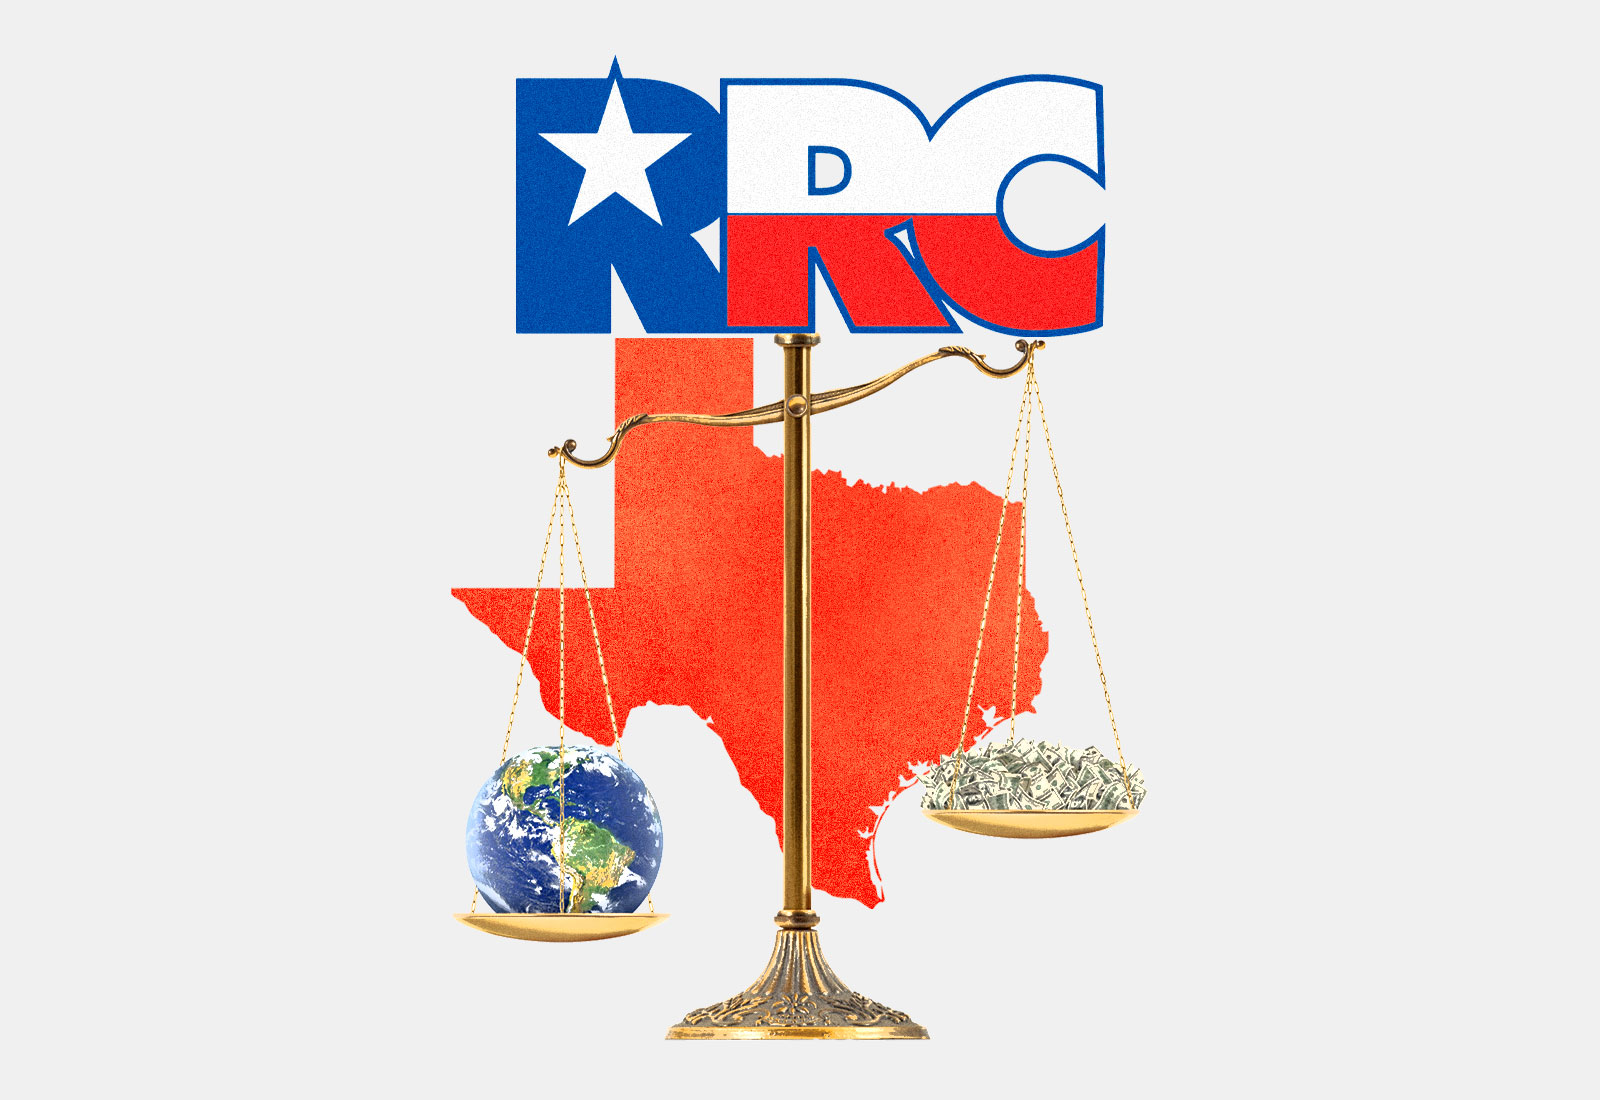 Texas Railroad Commission logo on top of scales with Earth and money on each side, Texas in background